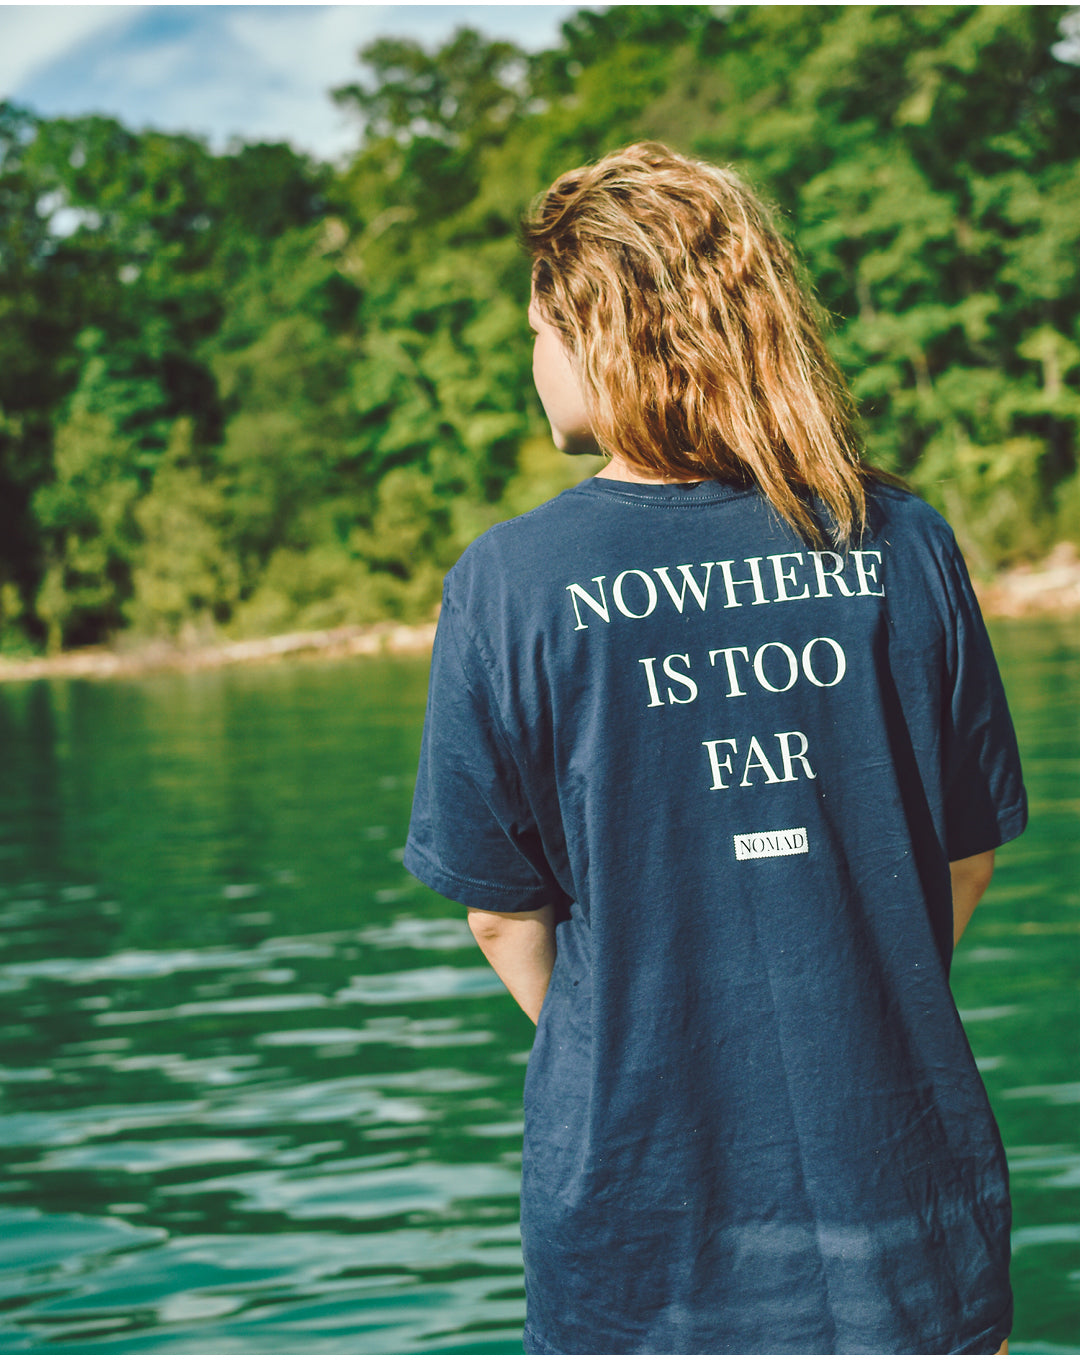 Ethan Hosford for Nomad Creative Works for the Nowhere Is Too Far Campaign, shot at the Cumberland Gap